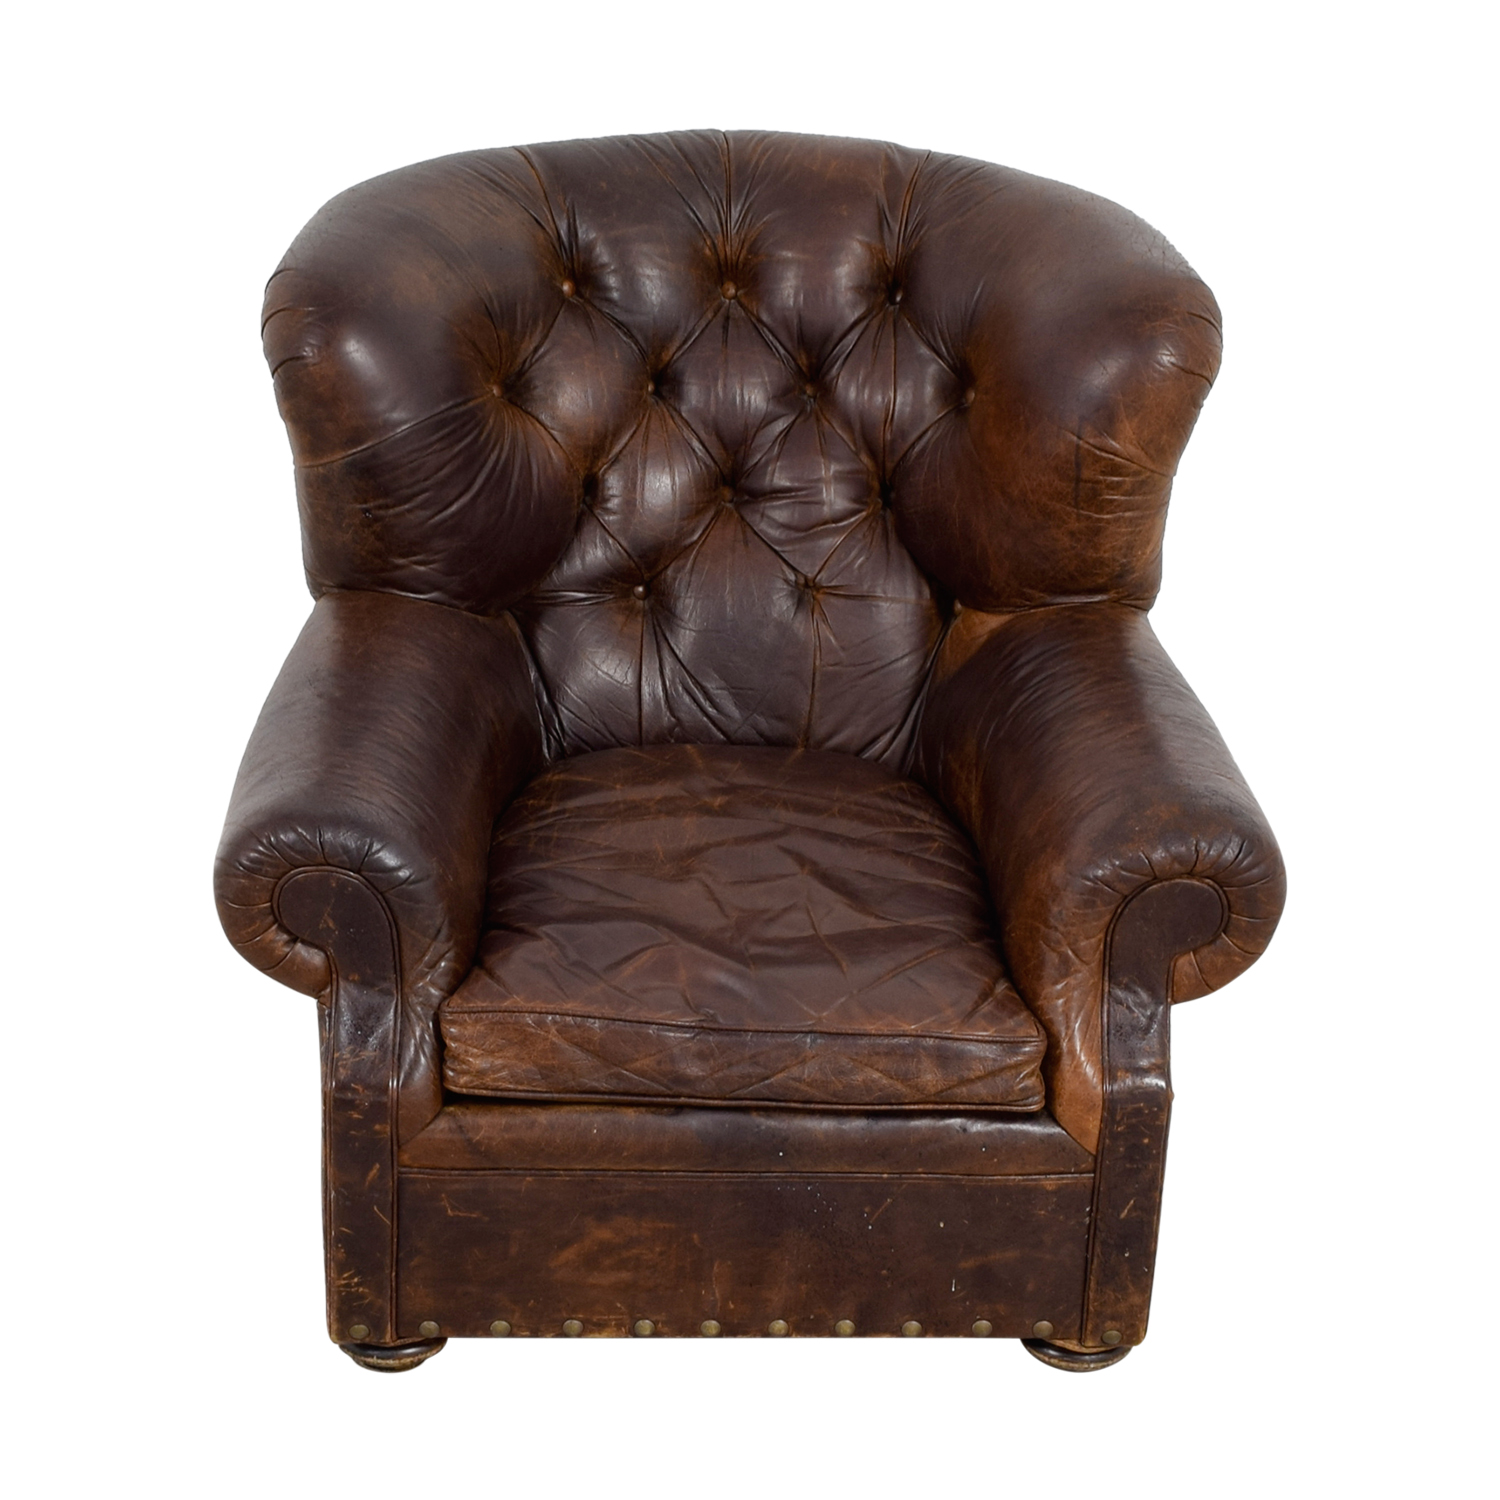 Restoration Hardware Leather Chairs 74 Off Restoration Hardware Restoration Hardware Brown